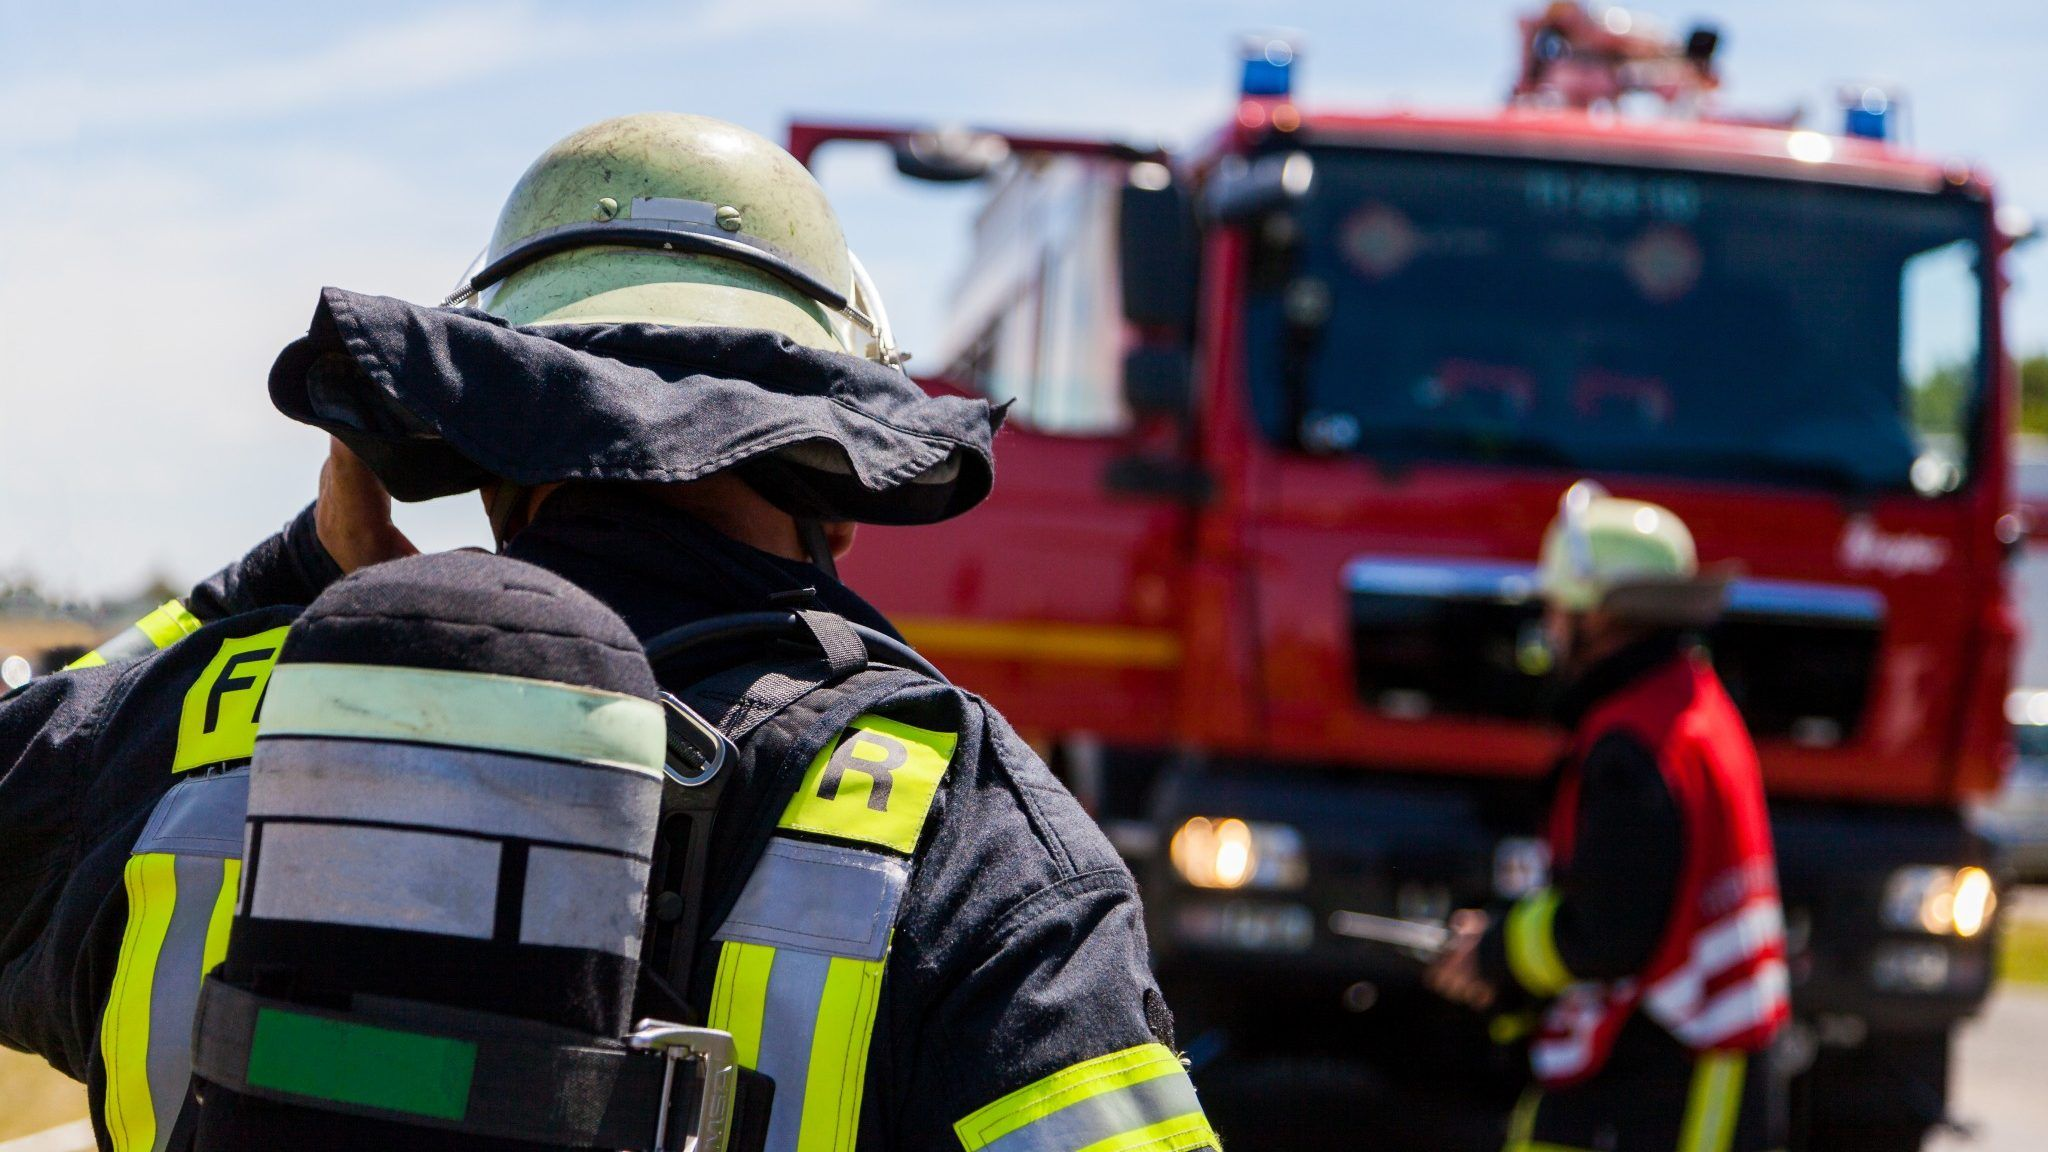 Emergency and uniformed services flywheel training